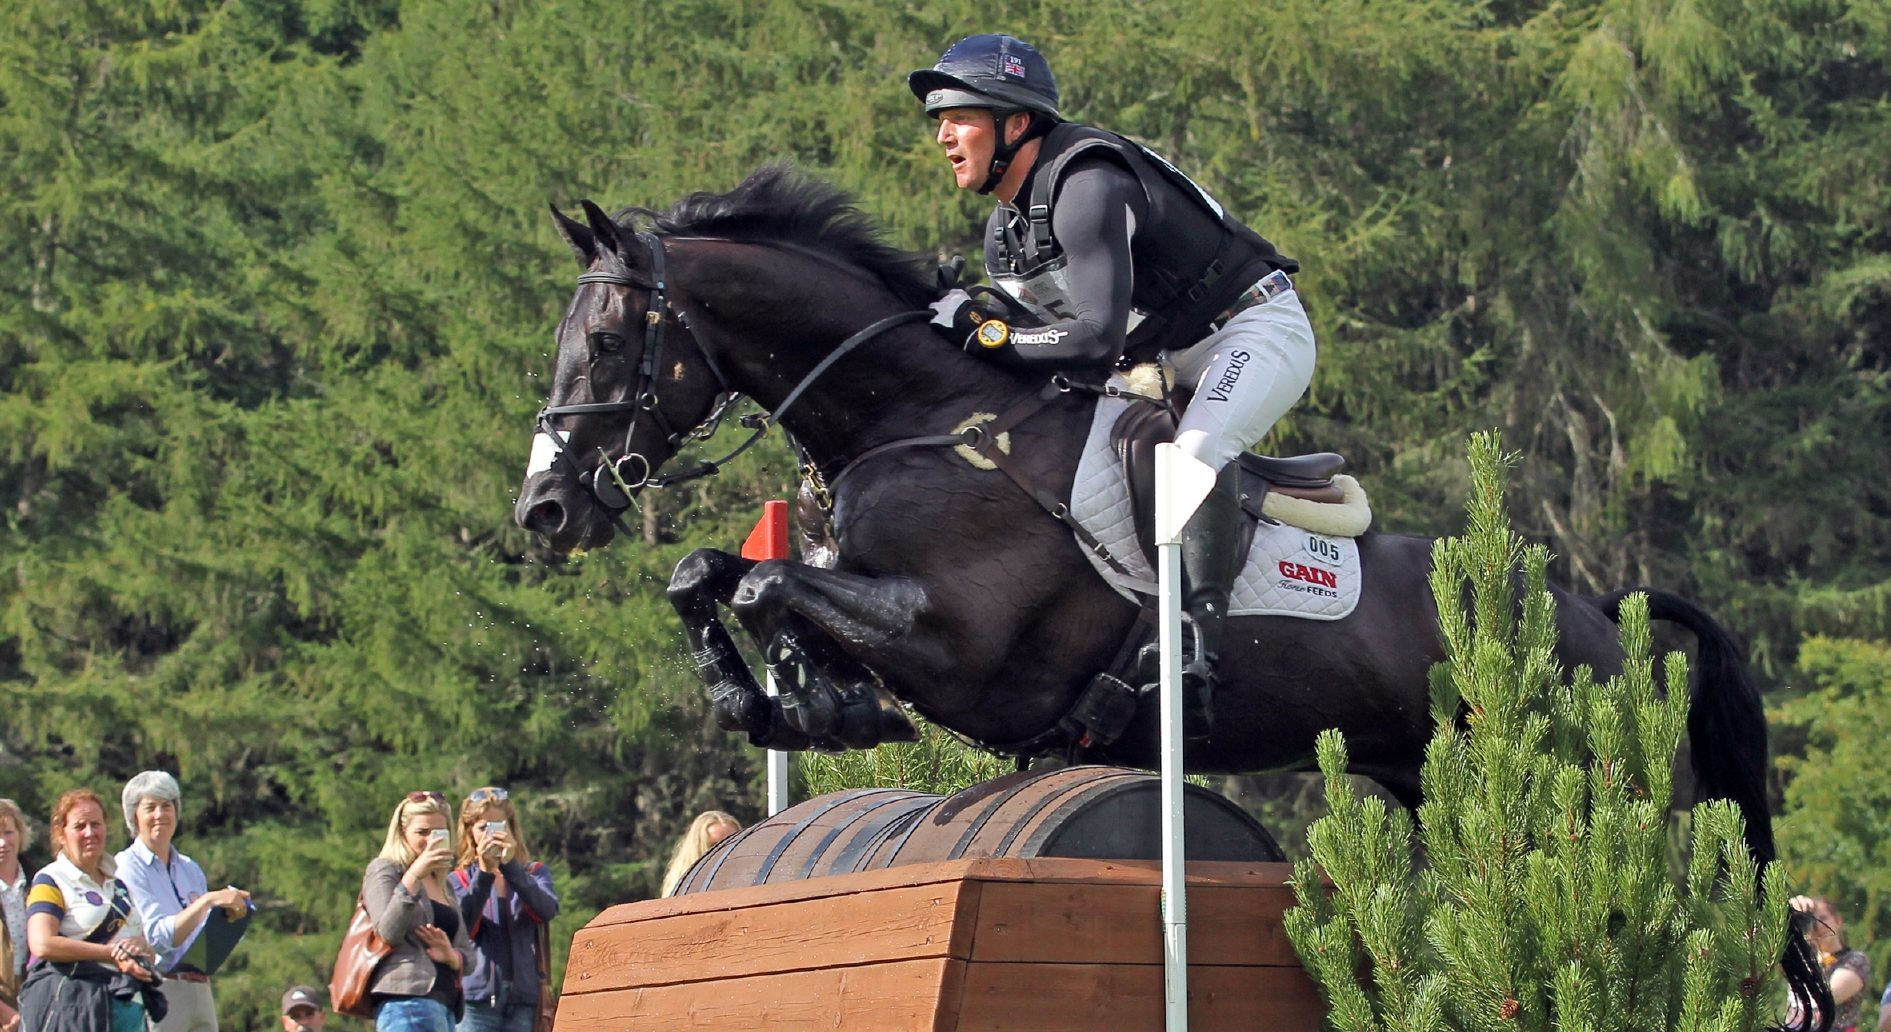 Oliver Townend in action on Cilnabradden Evo.